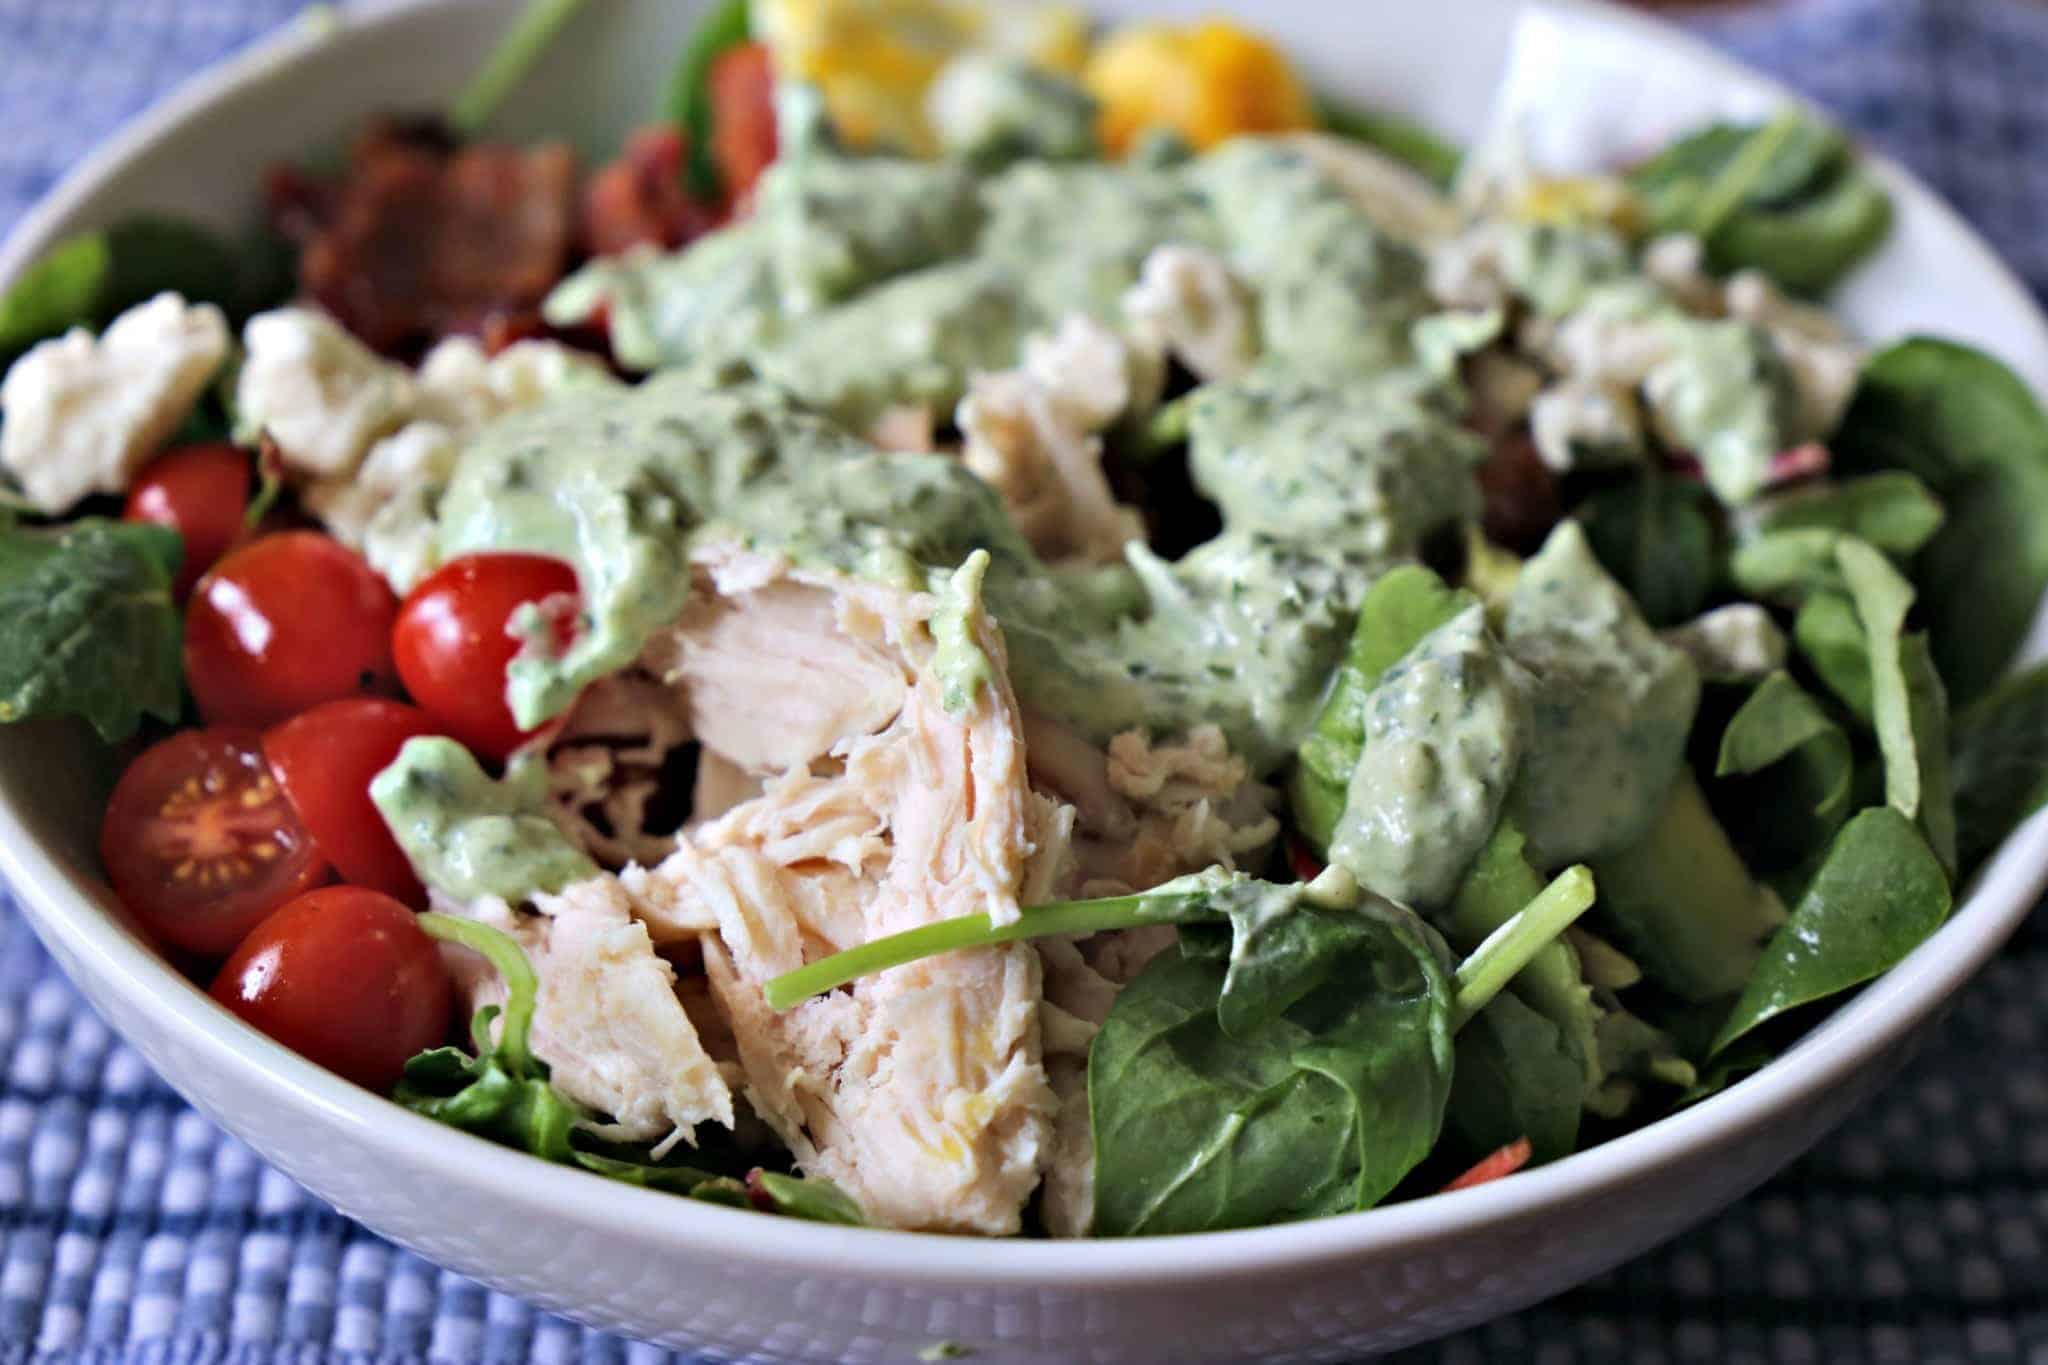 Classic Chopped Salad with Green Goddess Dressing